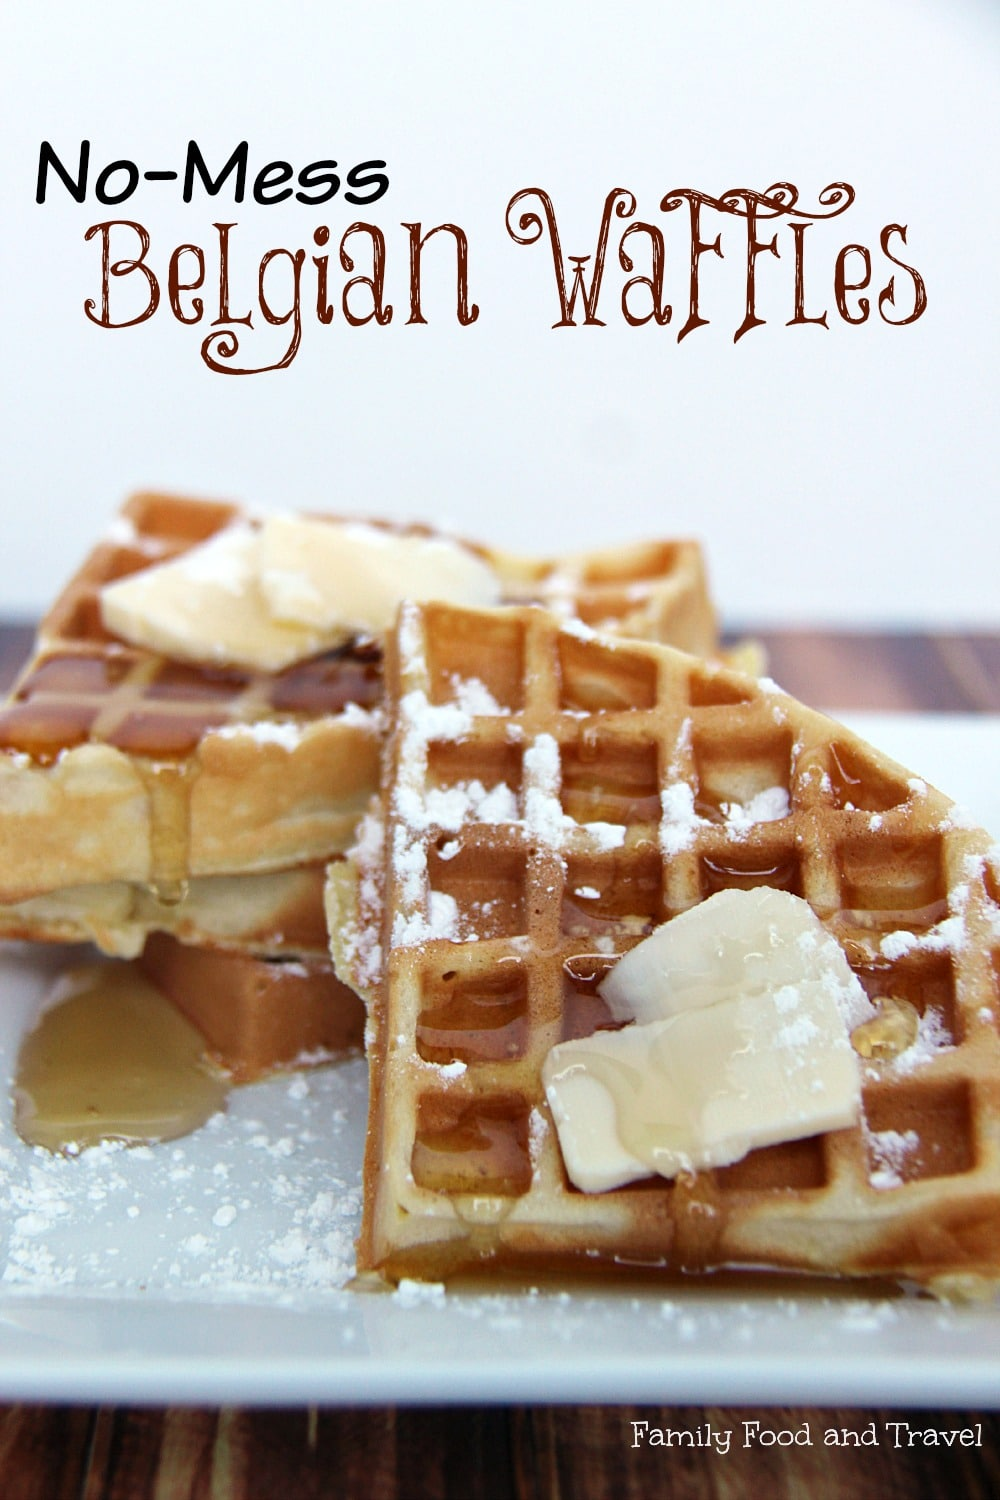 Perfect Belgian Waffles with Breville No Mess Waffle